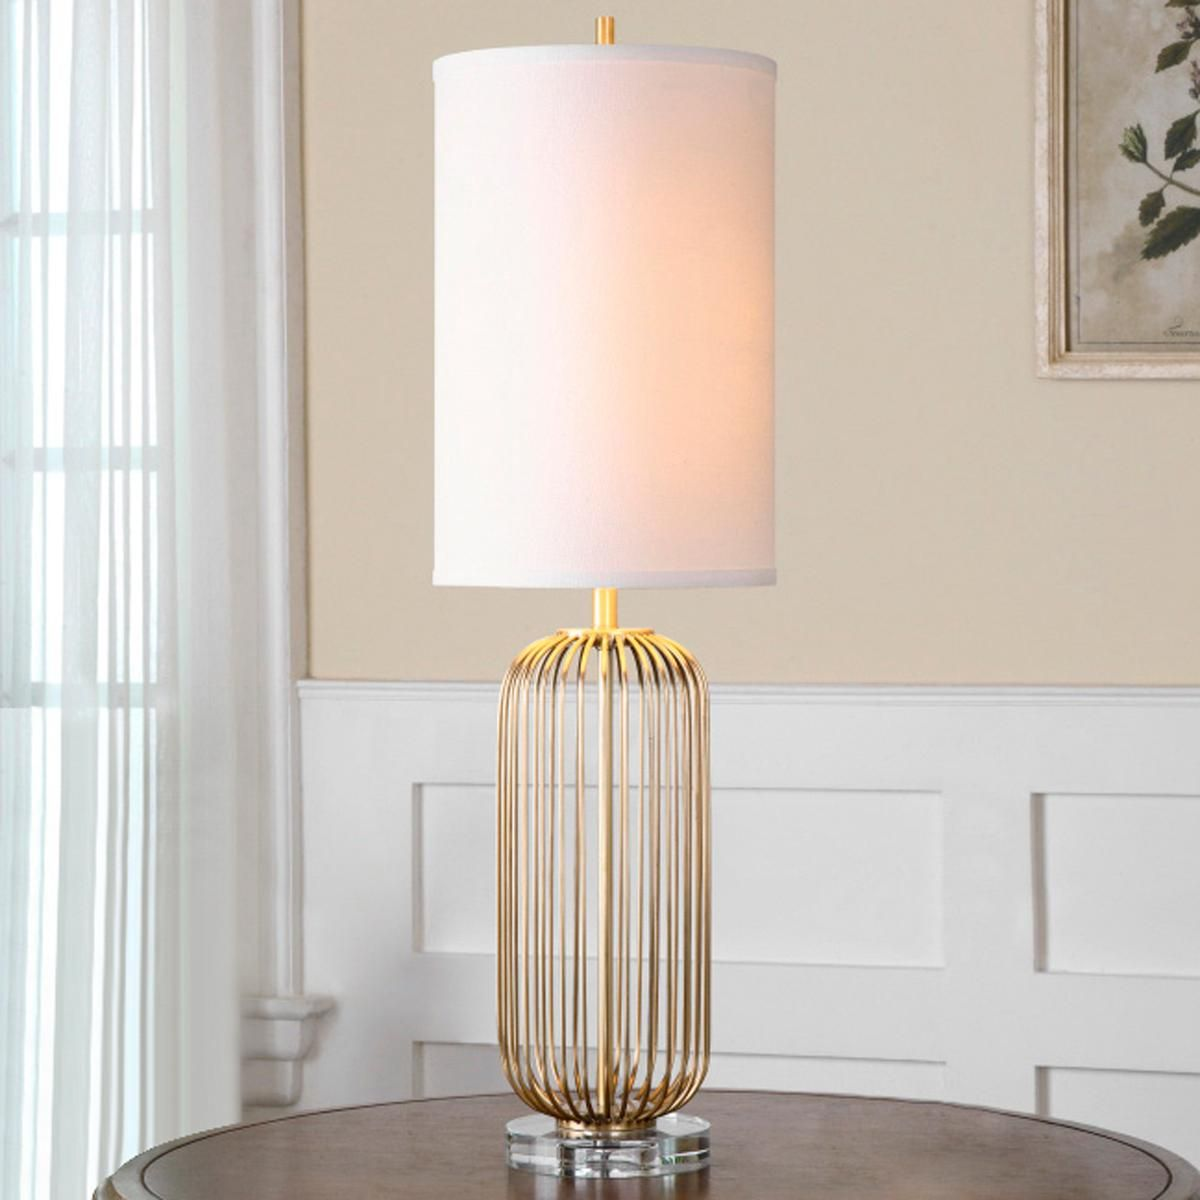 Metal Golden Cage Narrow Table Lamp Hand Forged Metal